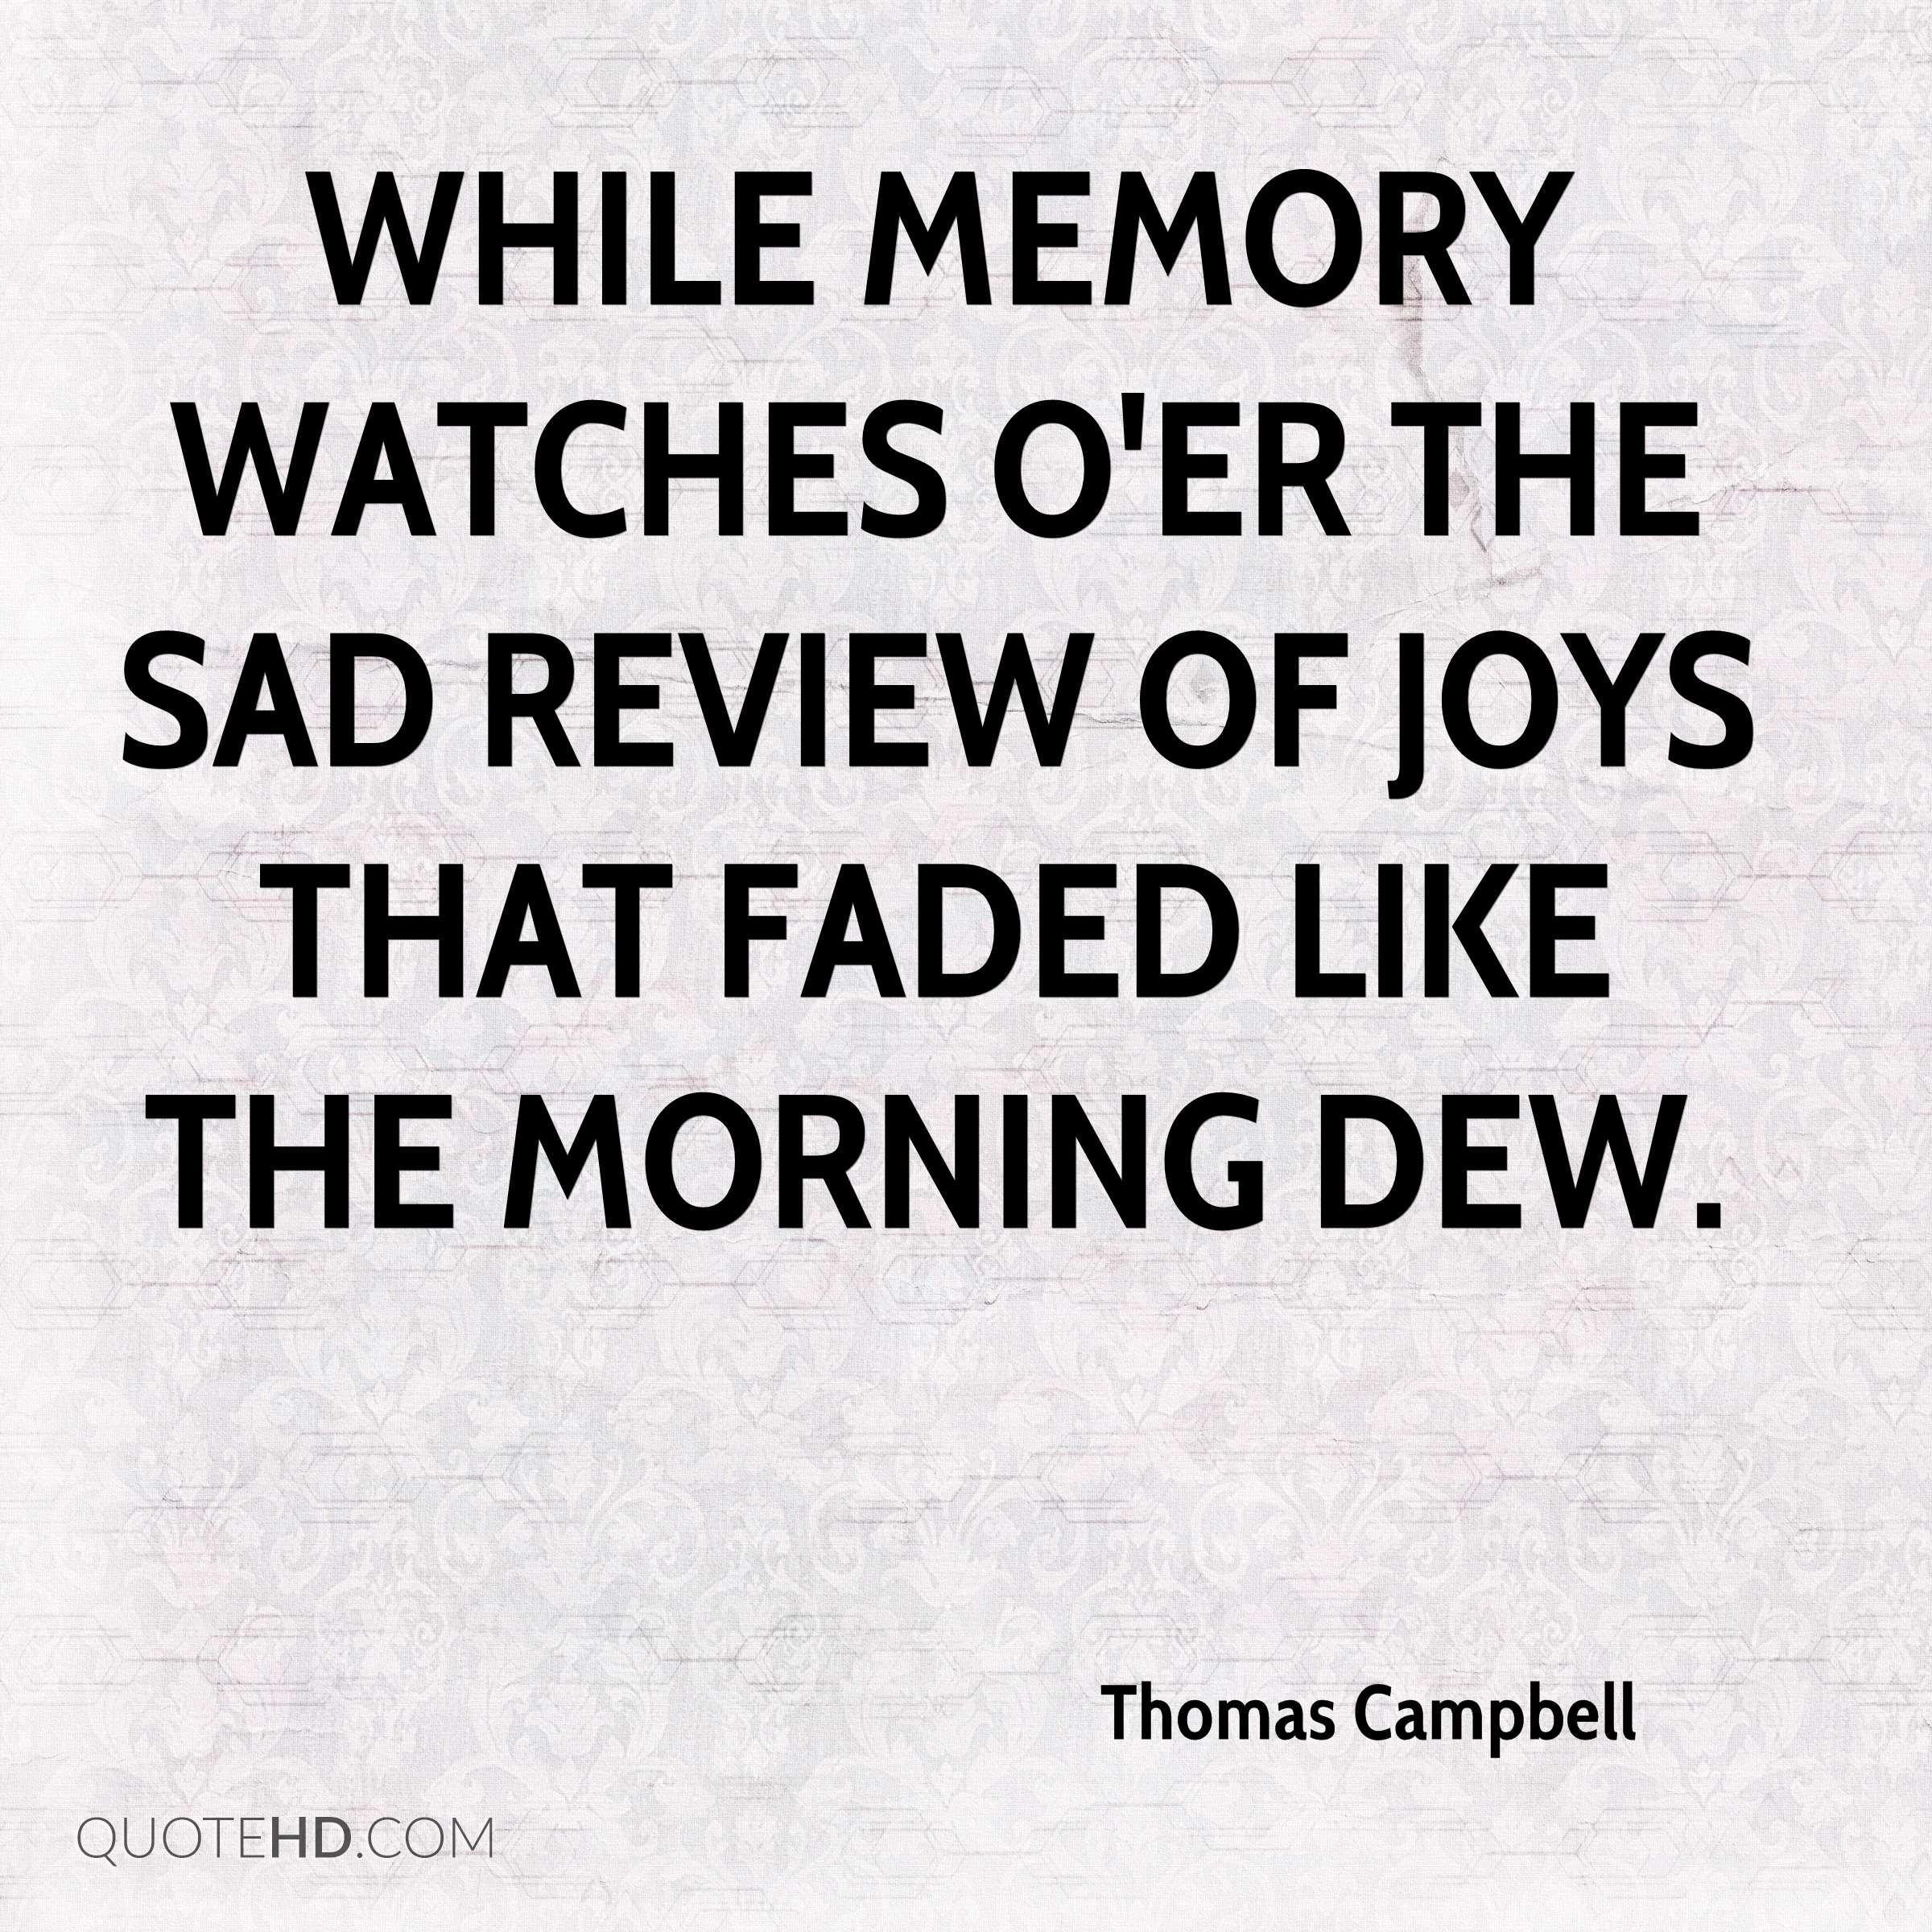 While memory watches o'er the sad review Of joys that faded like the morning dew.